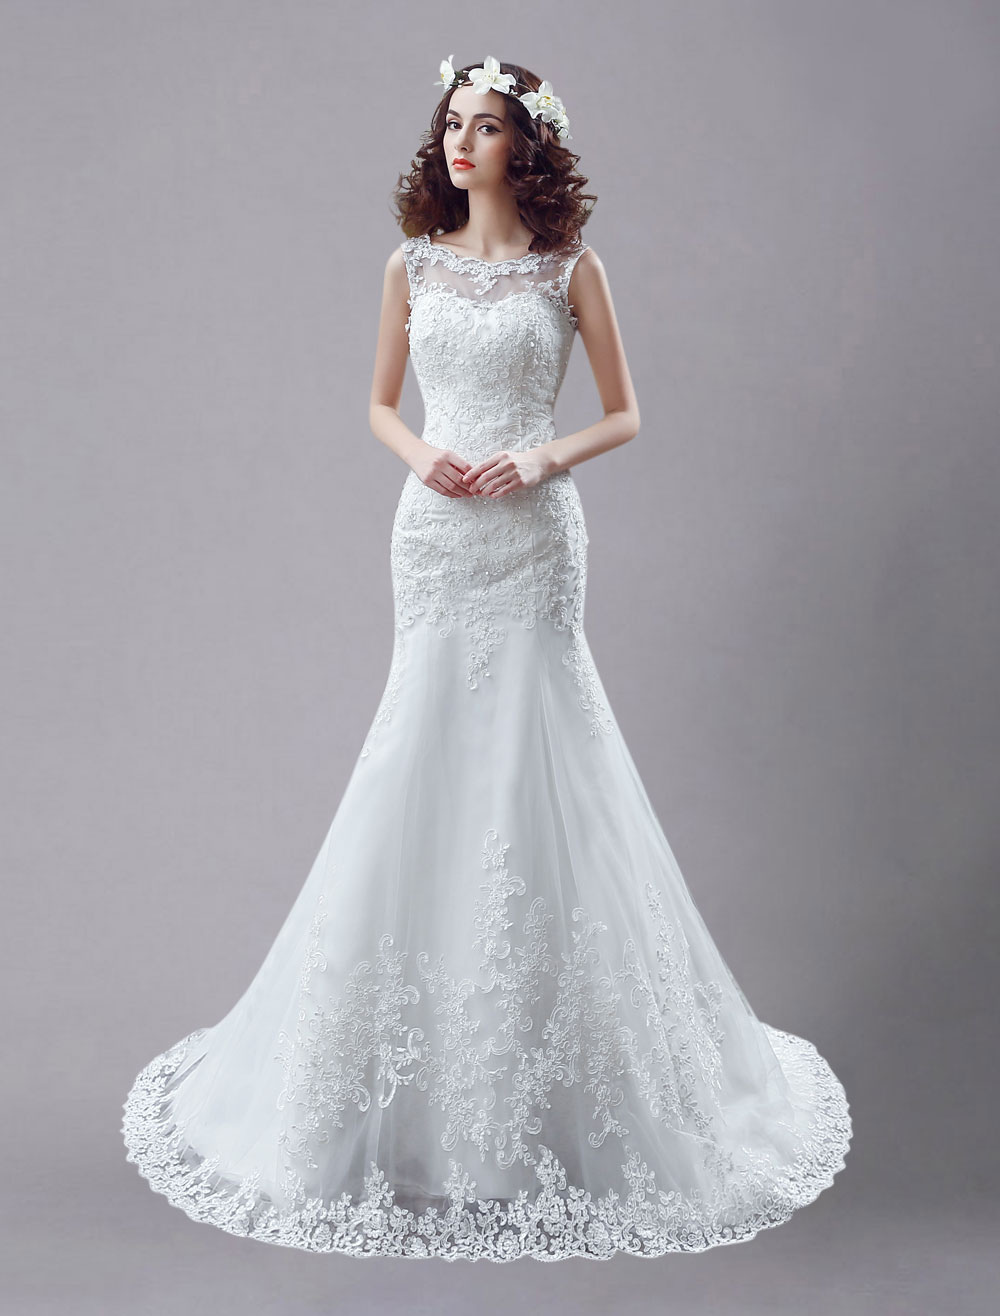 White Wedding Dress Lace Backless Bridal Dresses Rhinestones Beaded Mermaid Wedding Gown